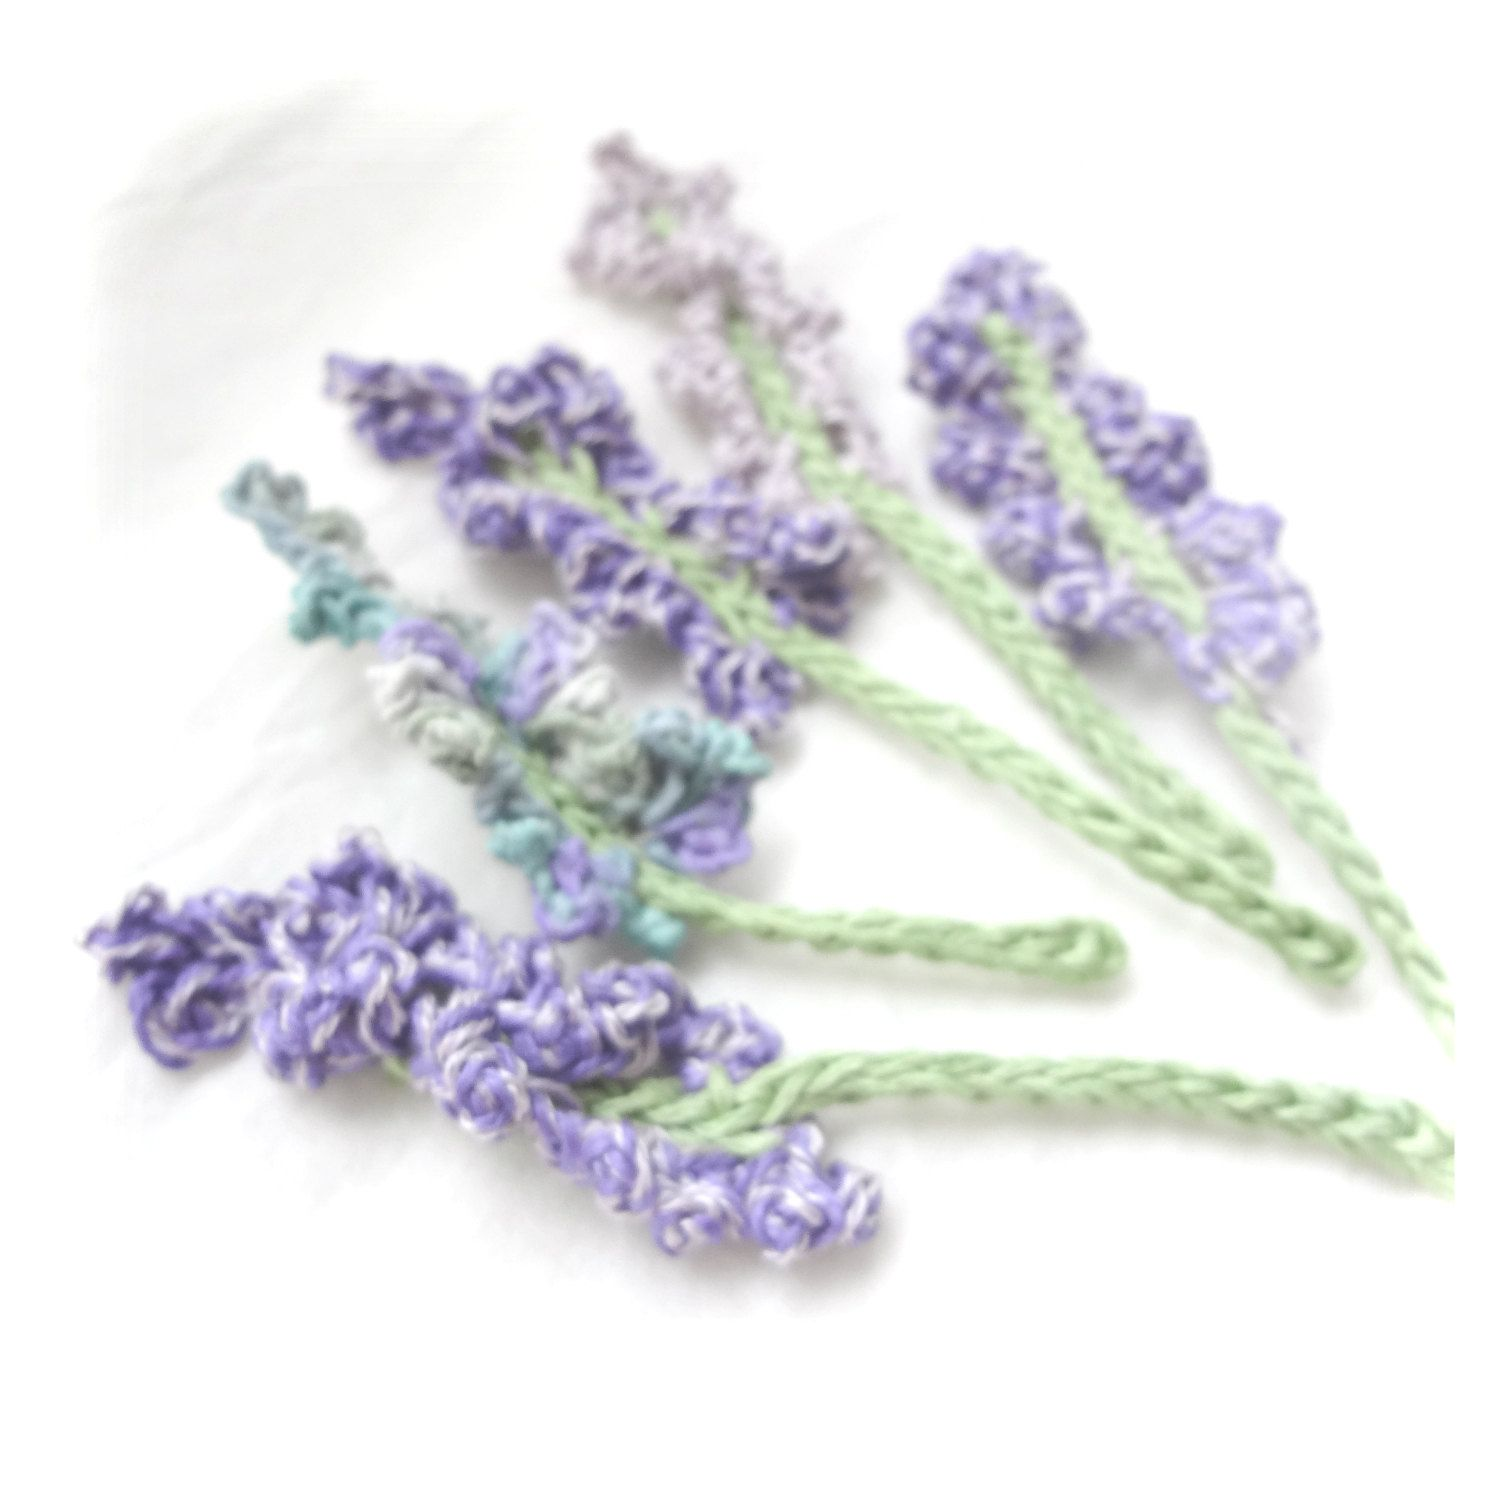 Set Of 6 Crochet Lavender Flowers Crochet Applique Small Crochet Lavender Cards Scrapbooks Appliques And Crochet Flowers Crochet Applique Crochet Bouquet